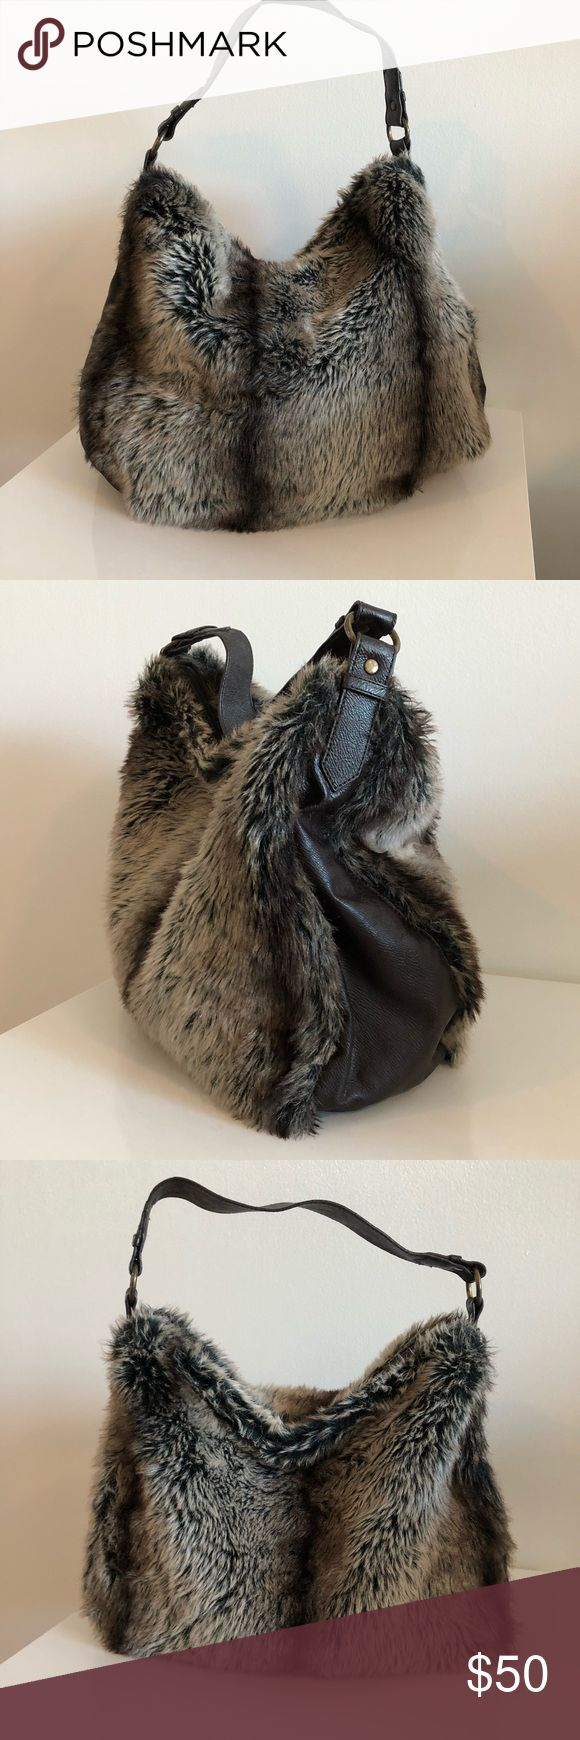 Faux fur and brown handbag Faux fur handbag with dark brown trim and a single shoulder strap. Inside brown fabric lining with a zip up pocket and 2 small cellphone pockets. Marks & Spencer Bags Shoulder Bags